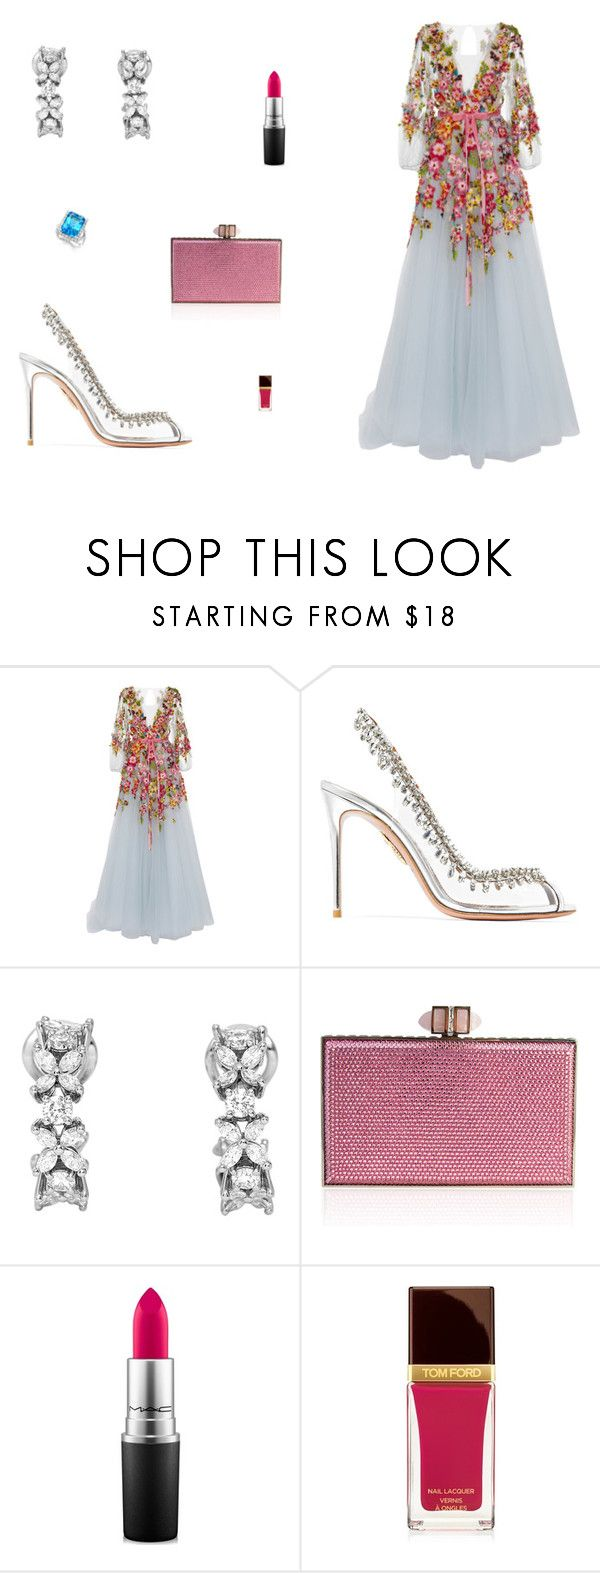 """""""Untitled #8661"""" by mie-miemie ❤ liked on Polyvore featuring Monique Lhuillier, Aquazzura, Tiffany & Co., Judith Leiber, MAC Cosmetics and Tom Ford"""